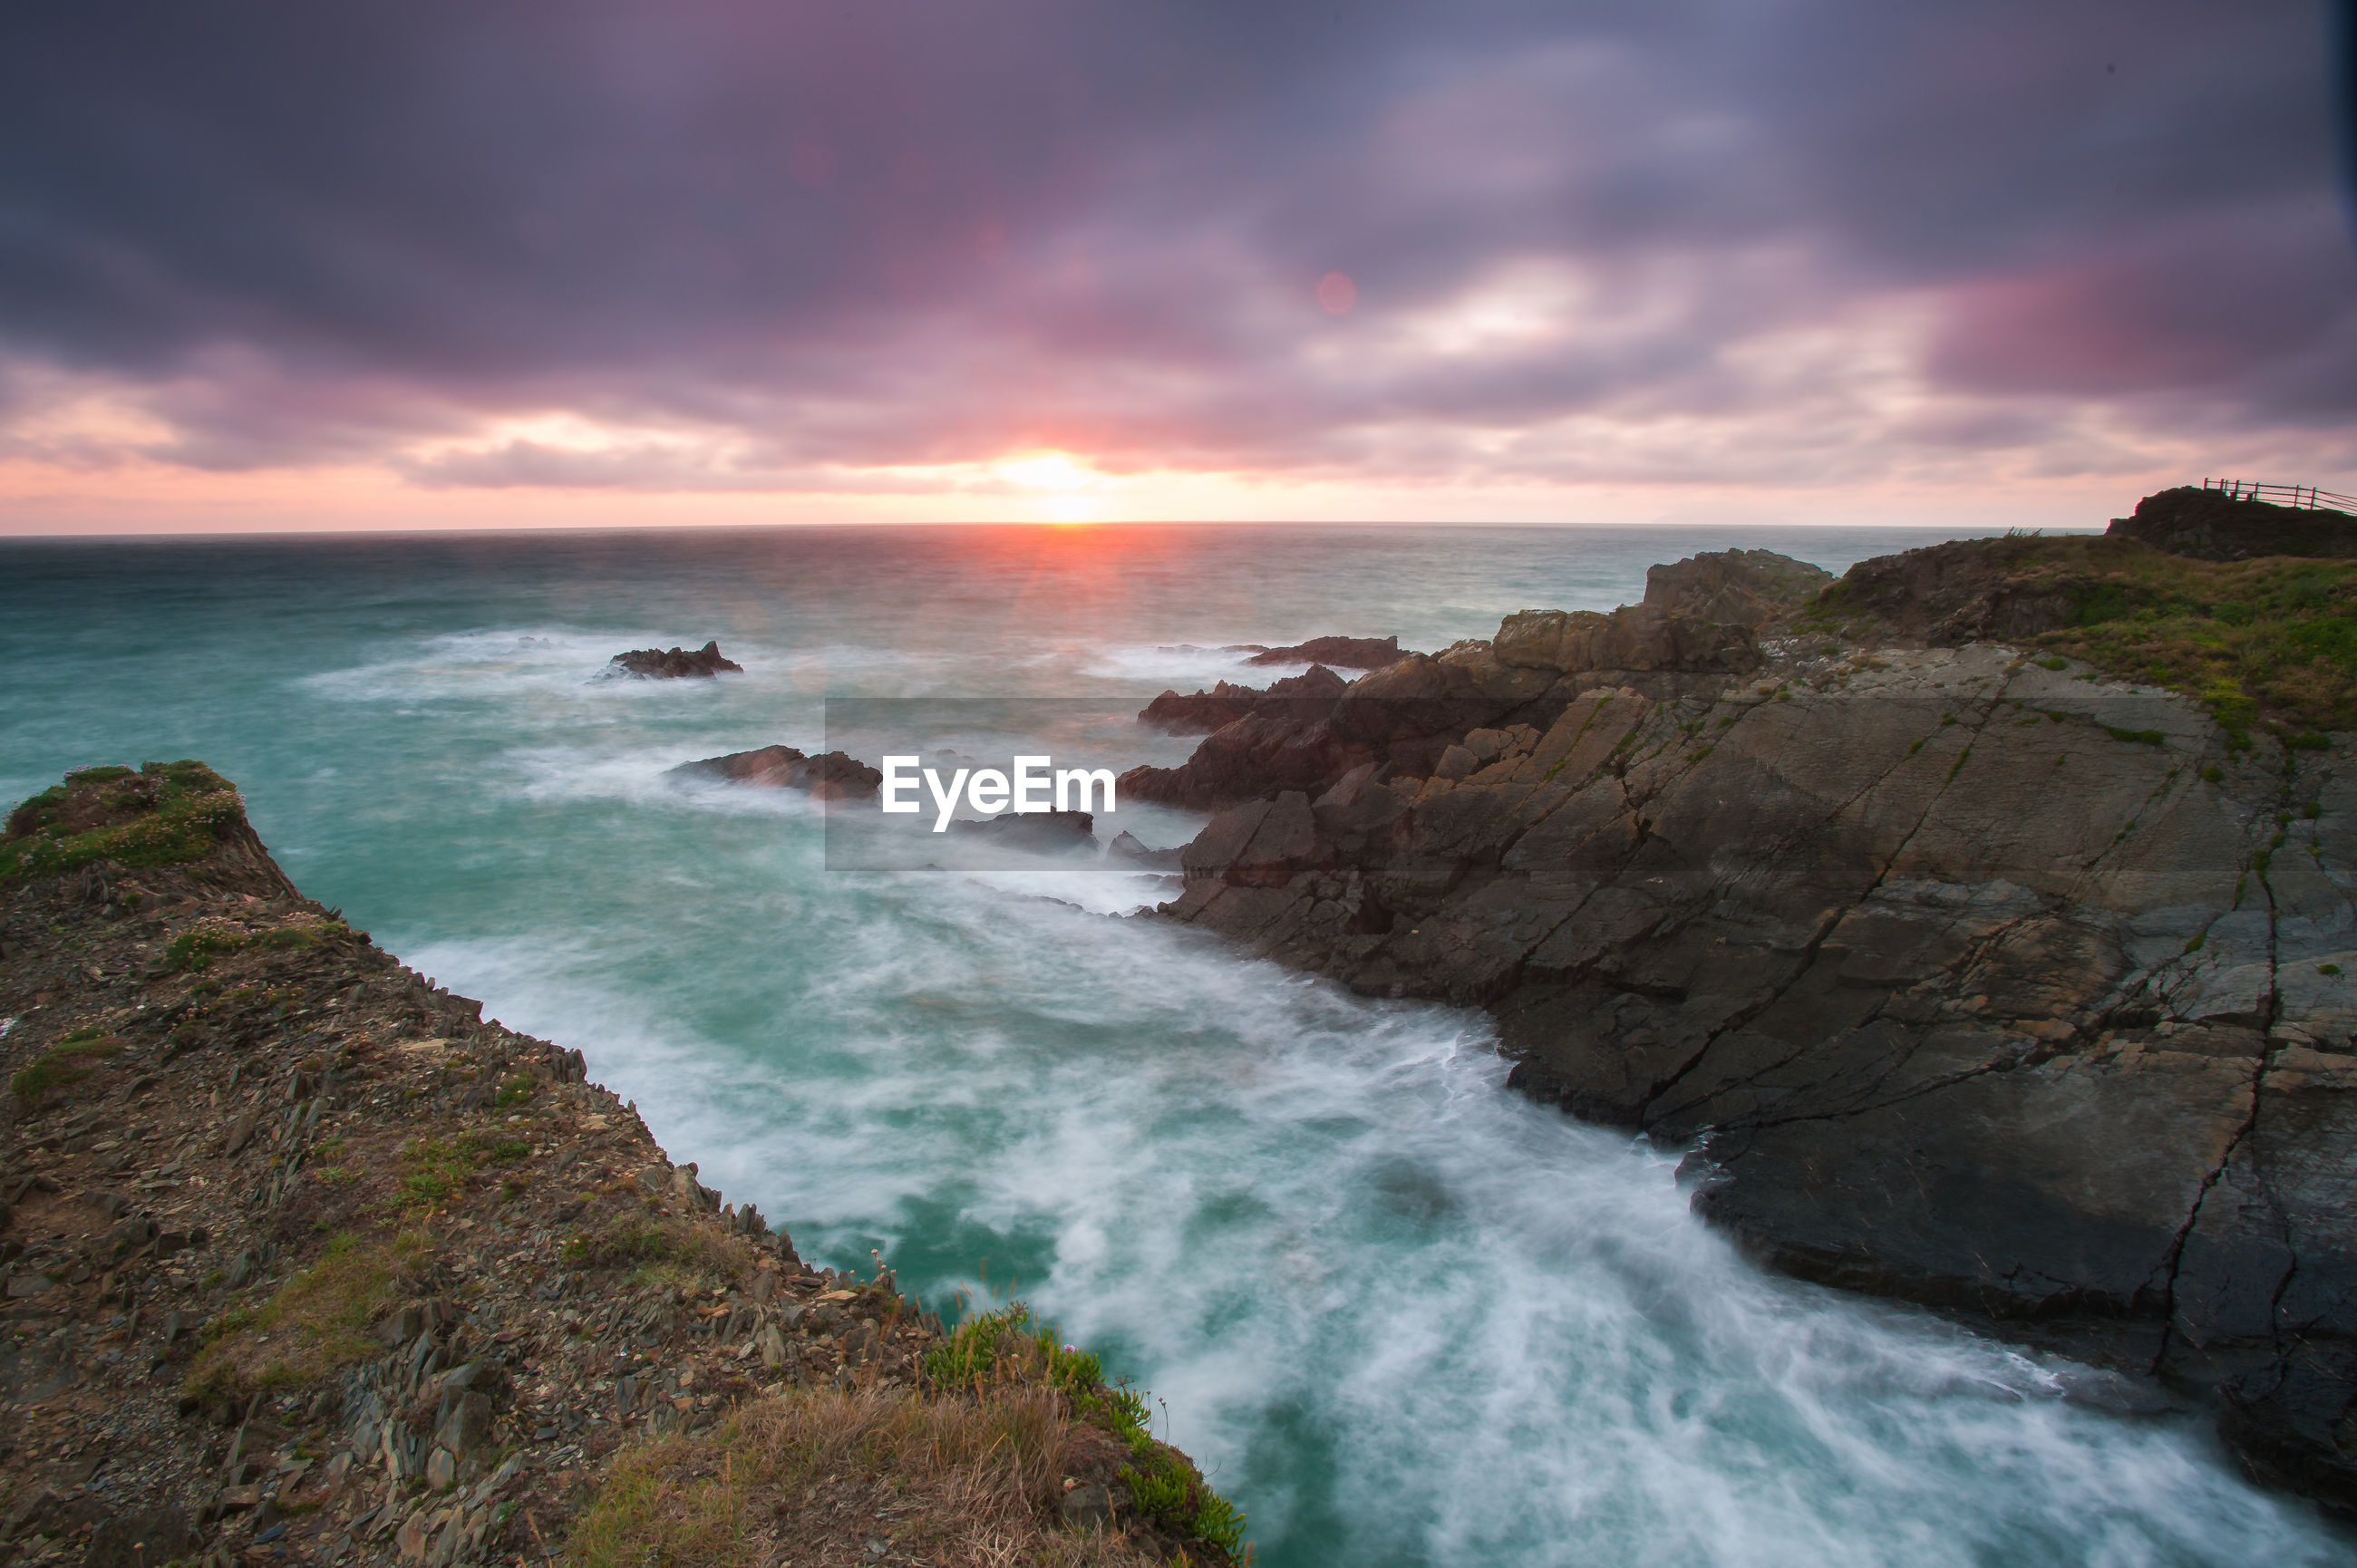 SCENIC VIEW OF ROCKY BEACH AGAINST SKY DURING SUNSET